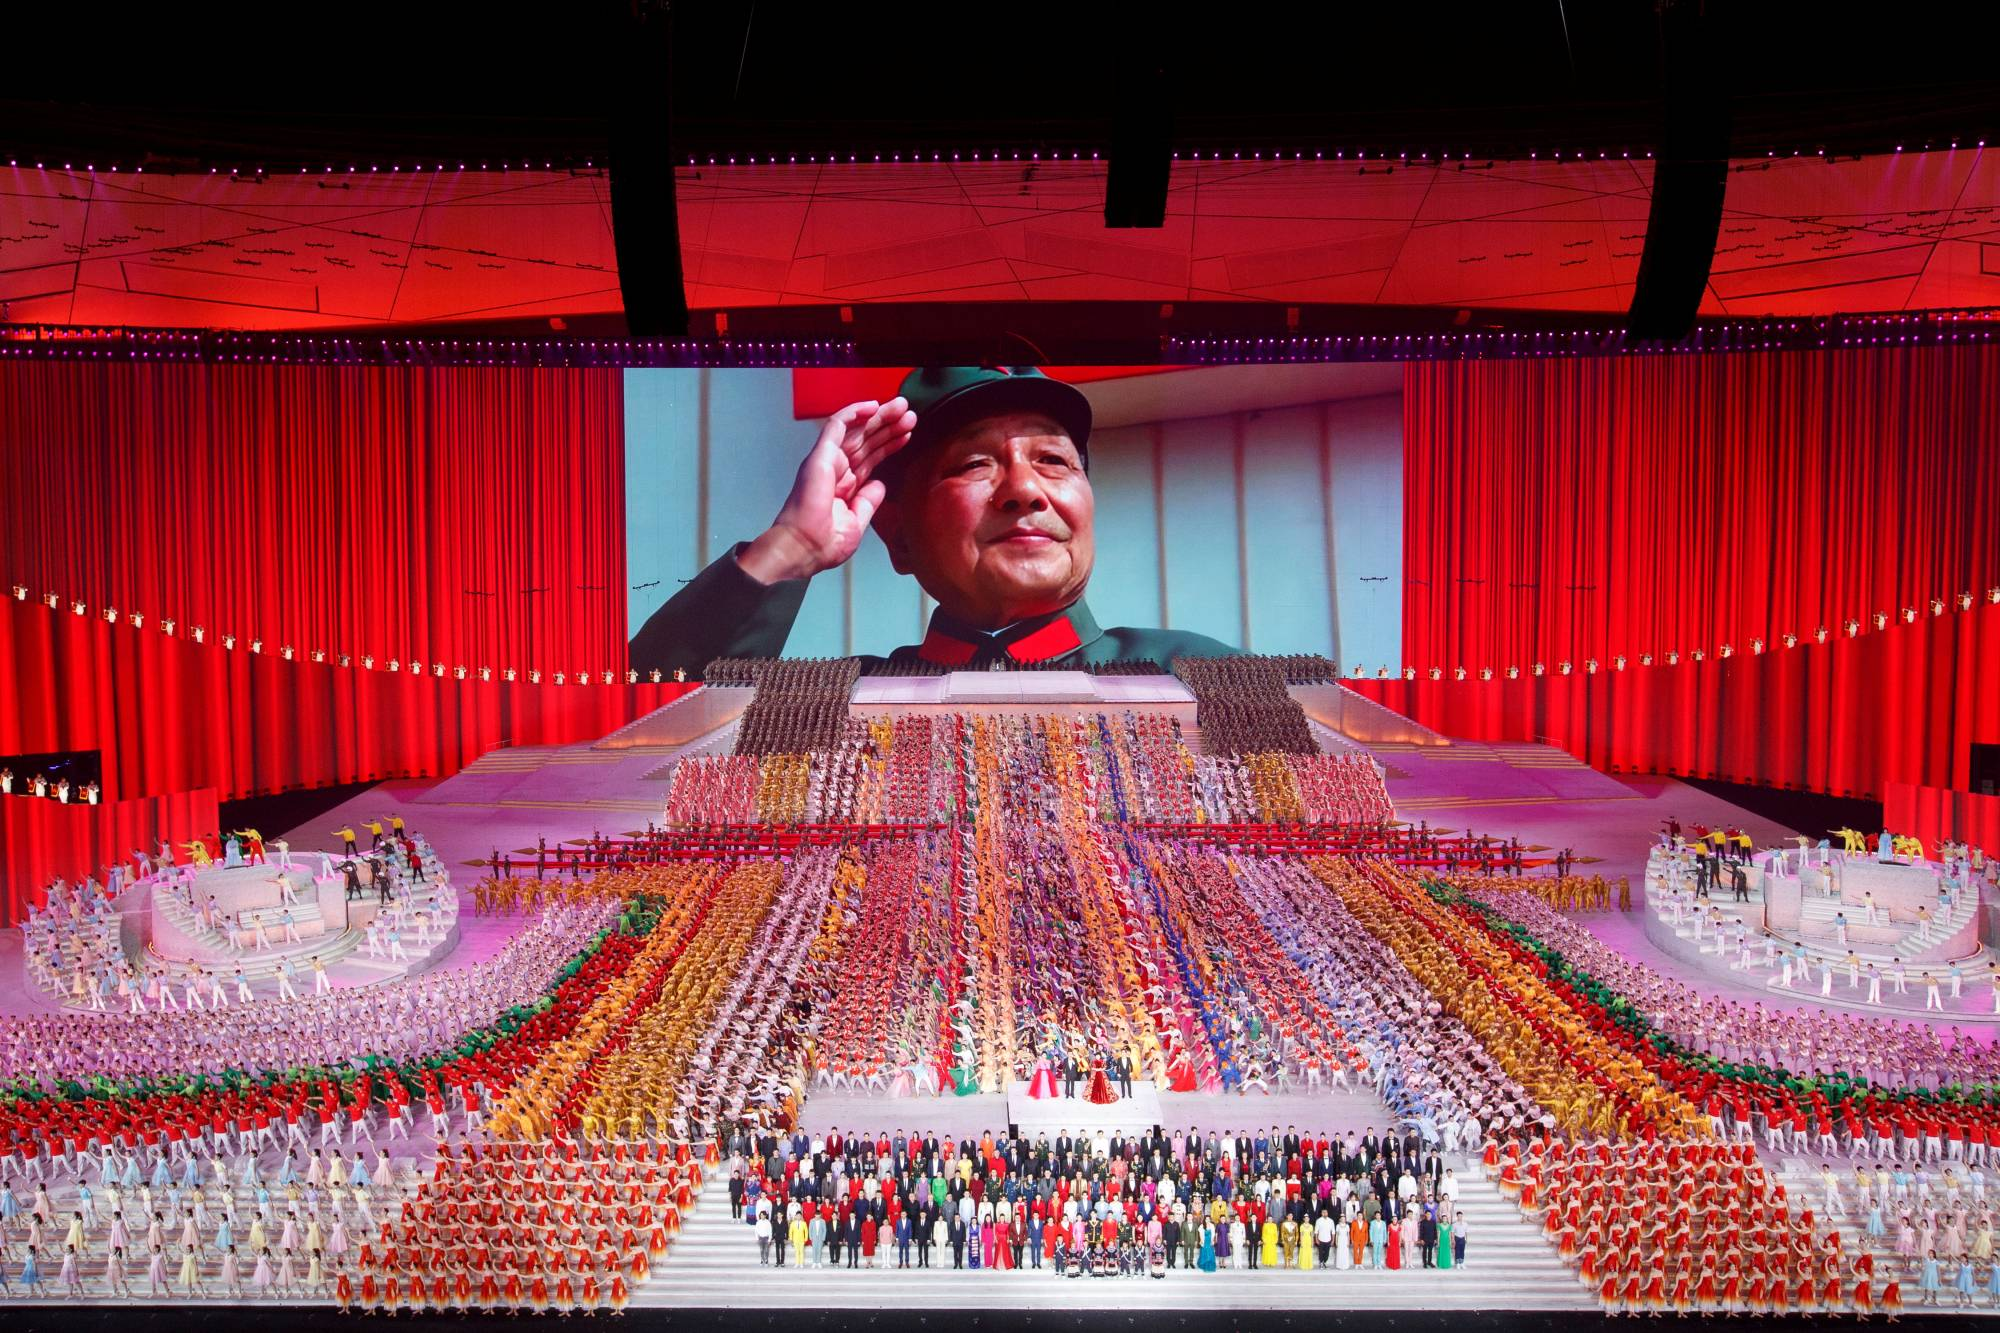 Former Chinese leader Deng Xiaoping, credited with launching China's economic miracle, is honored last month during a show in Beijing commemorating the 100th anniversary of the founding of the Chinese Communist Party.  | REUTERS